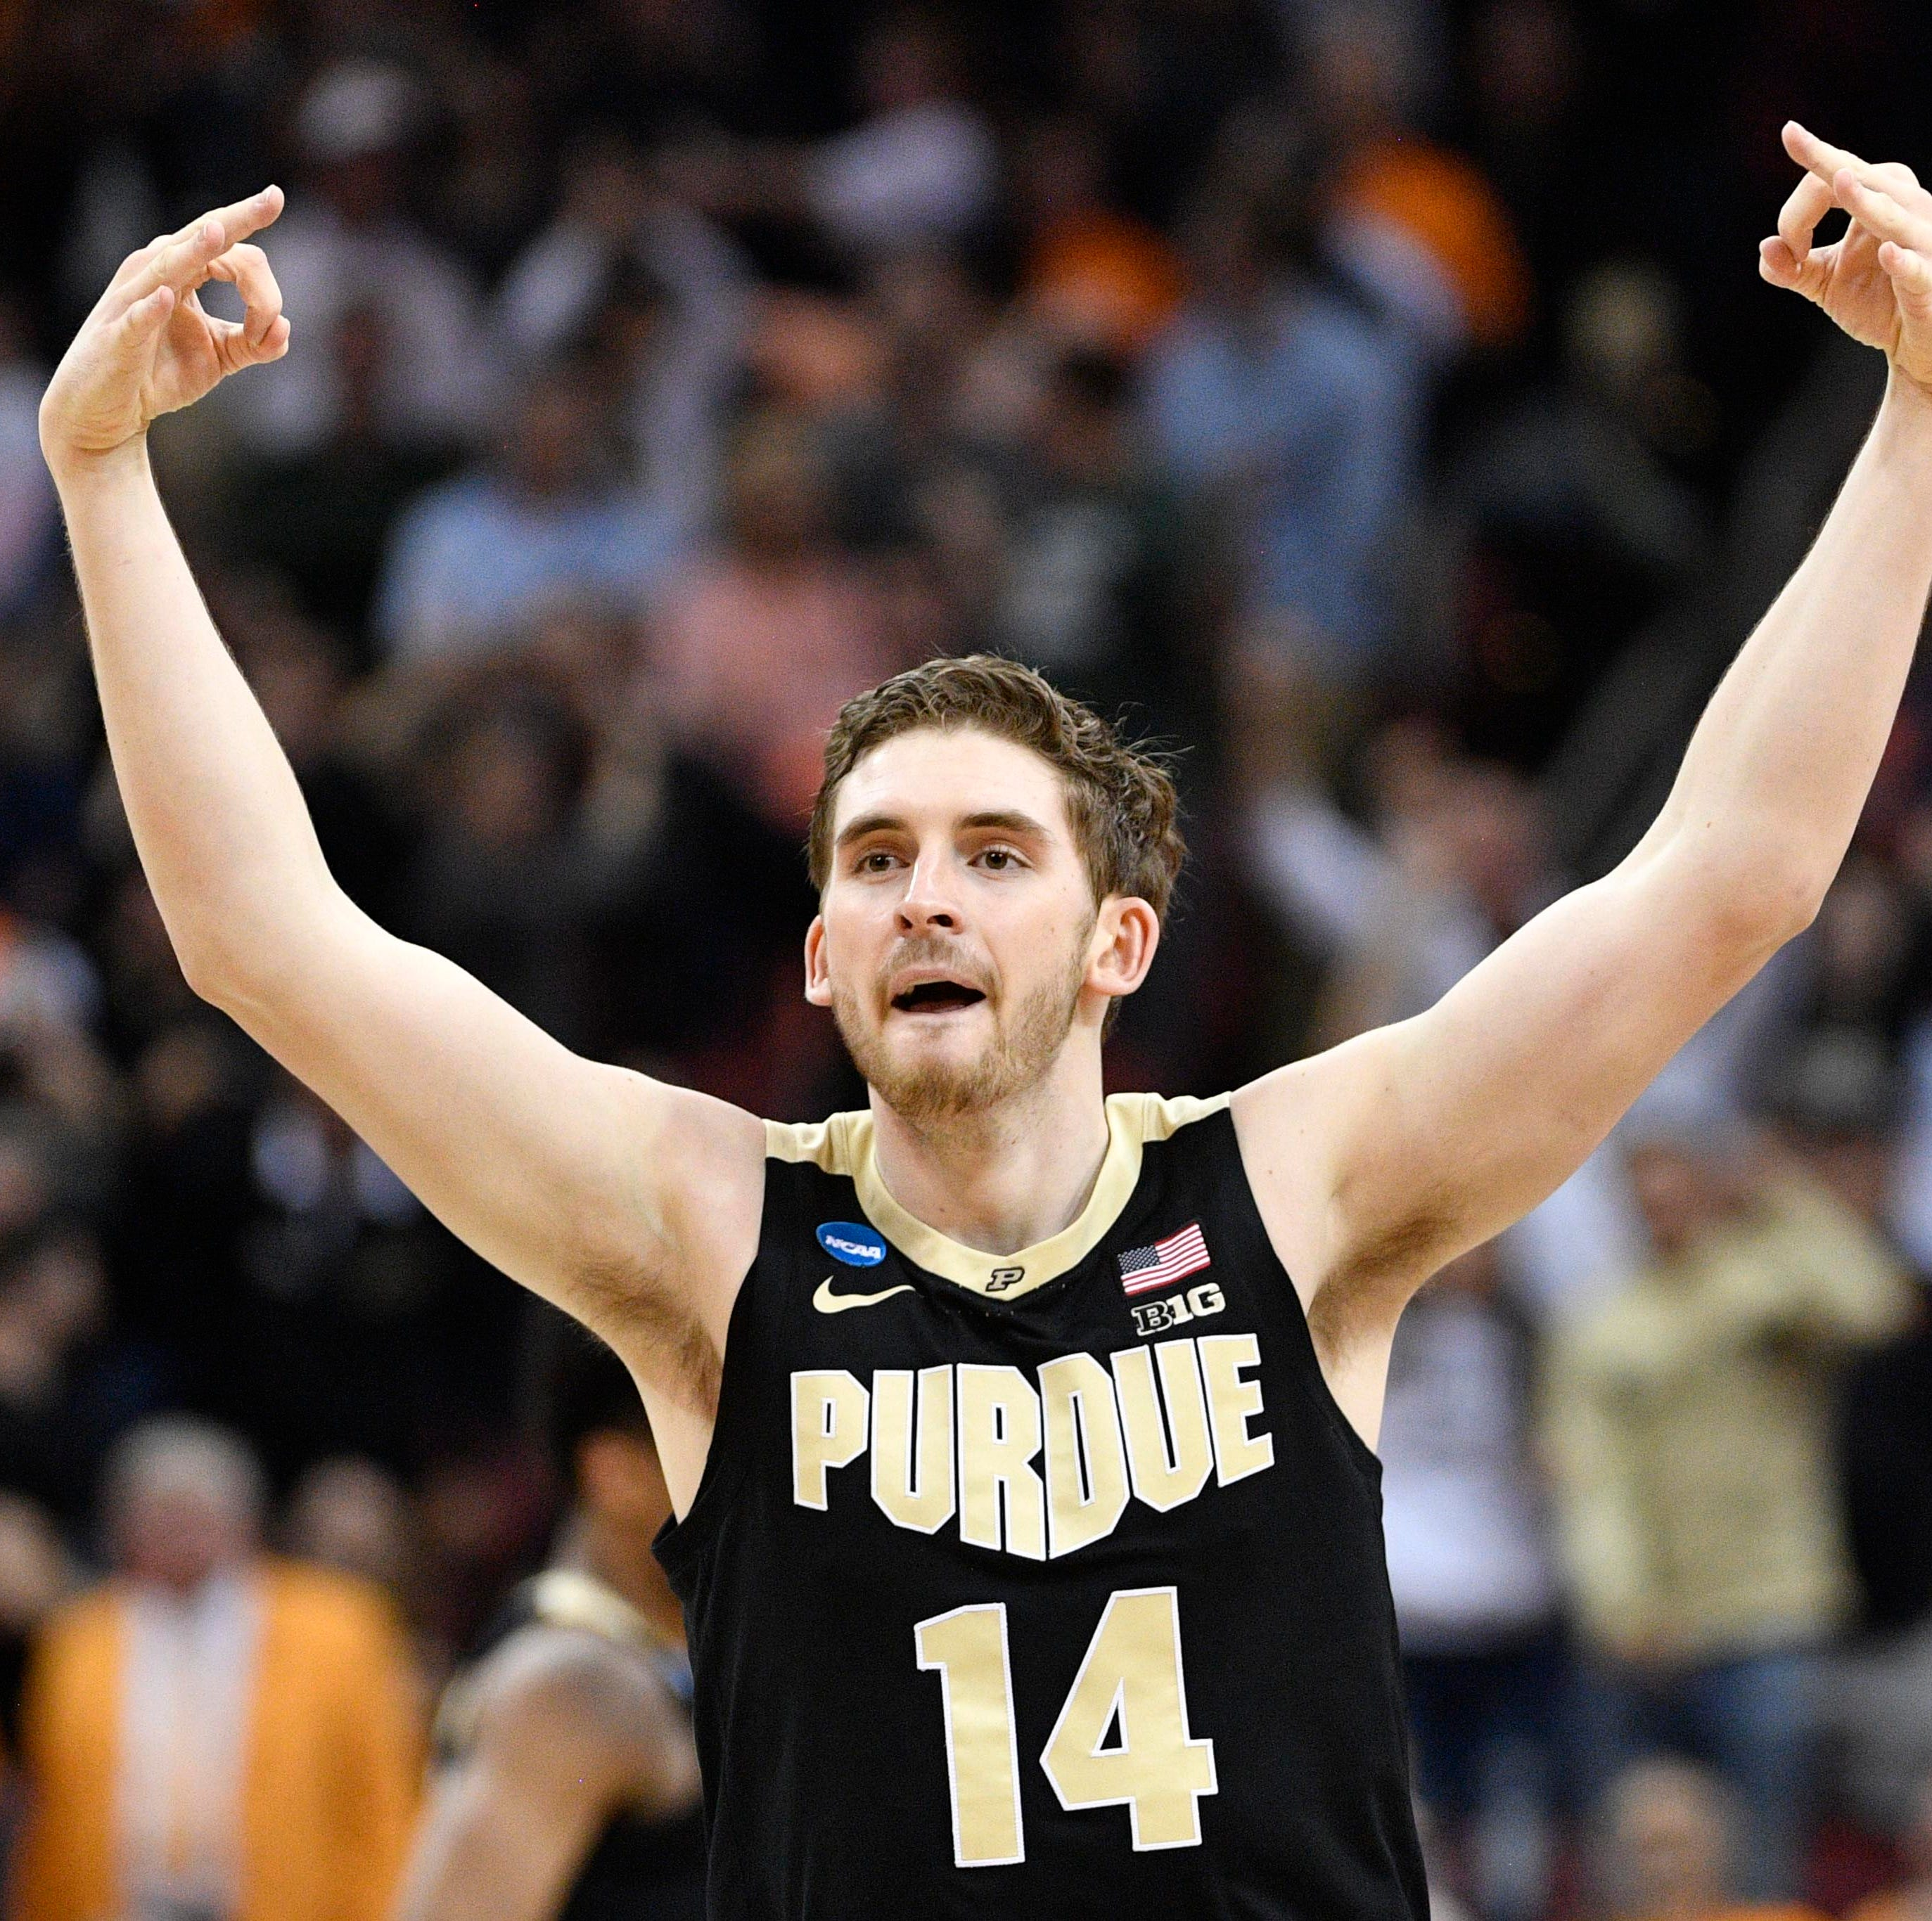 March Madness: Purdue basketball's Ryan Cline catches fire vs. Tennessee, Twitter loses it